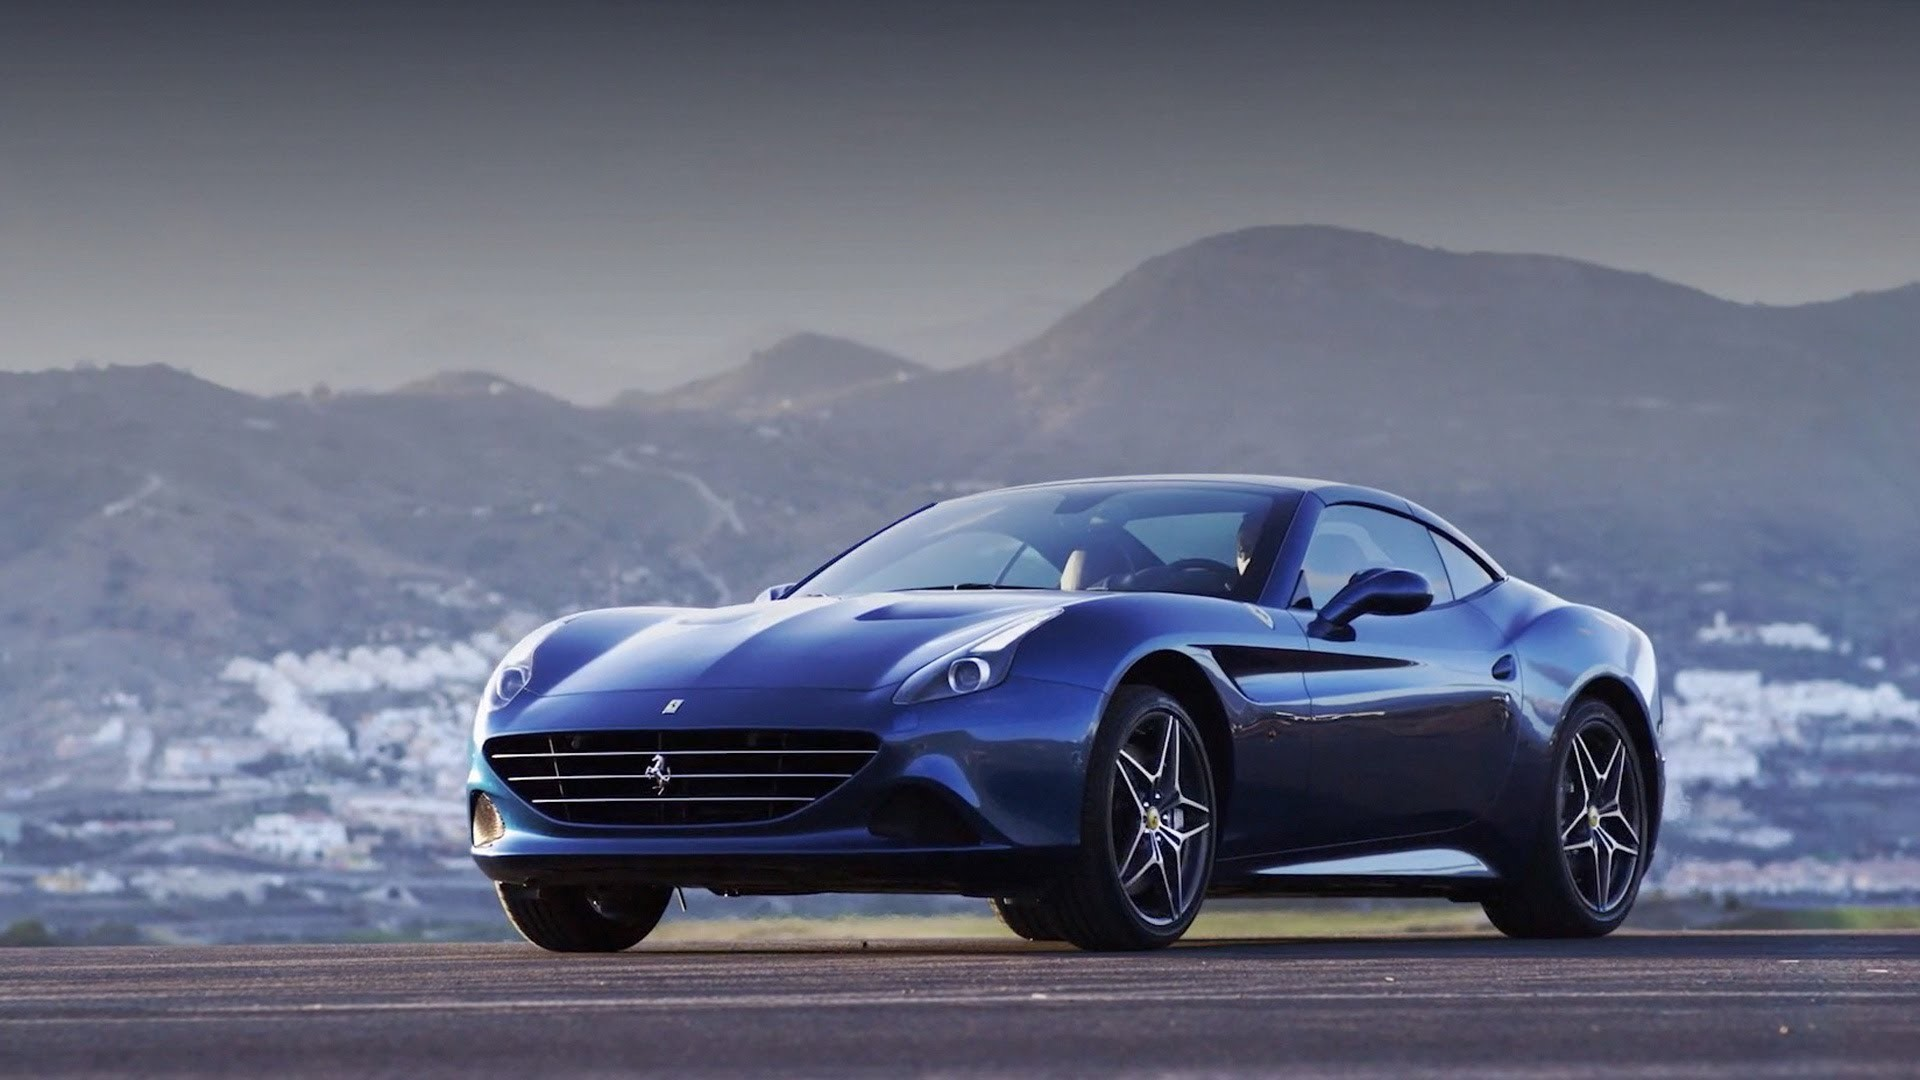 1920x1080 ferrari california t photos uk ...